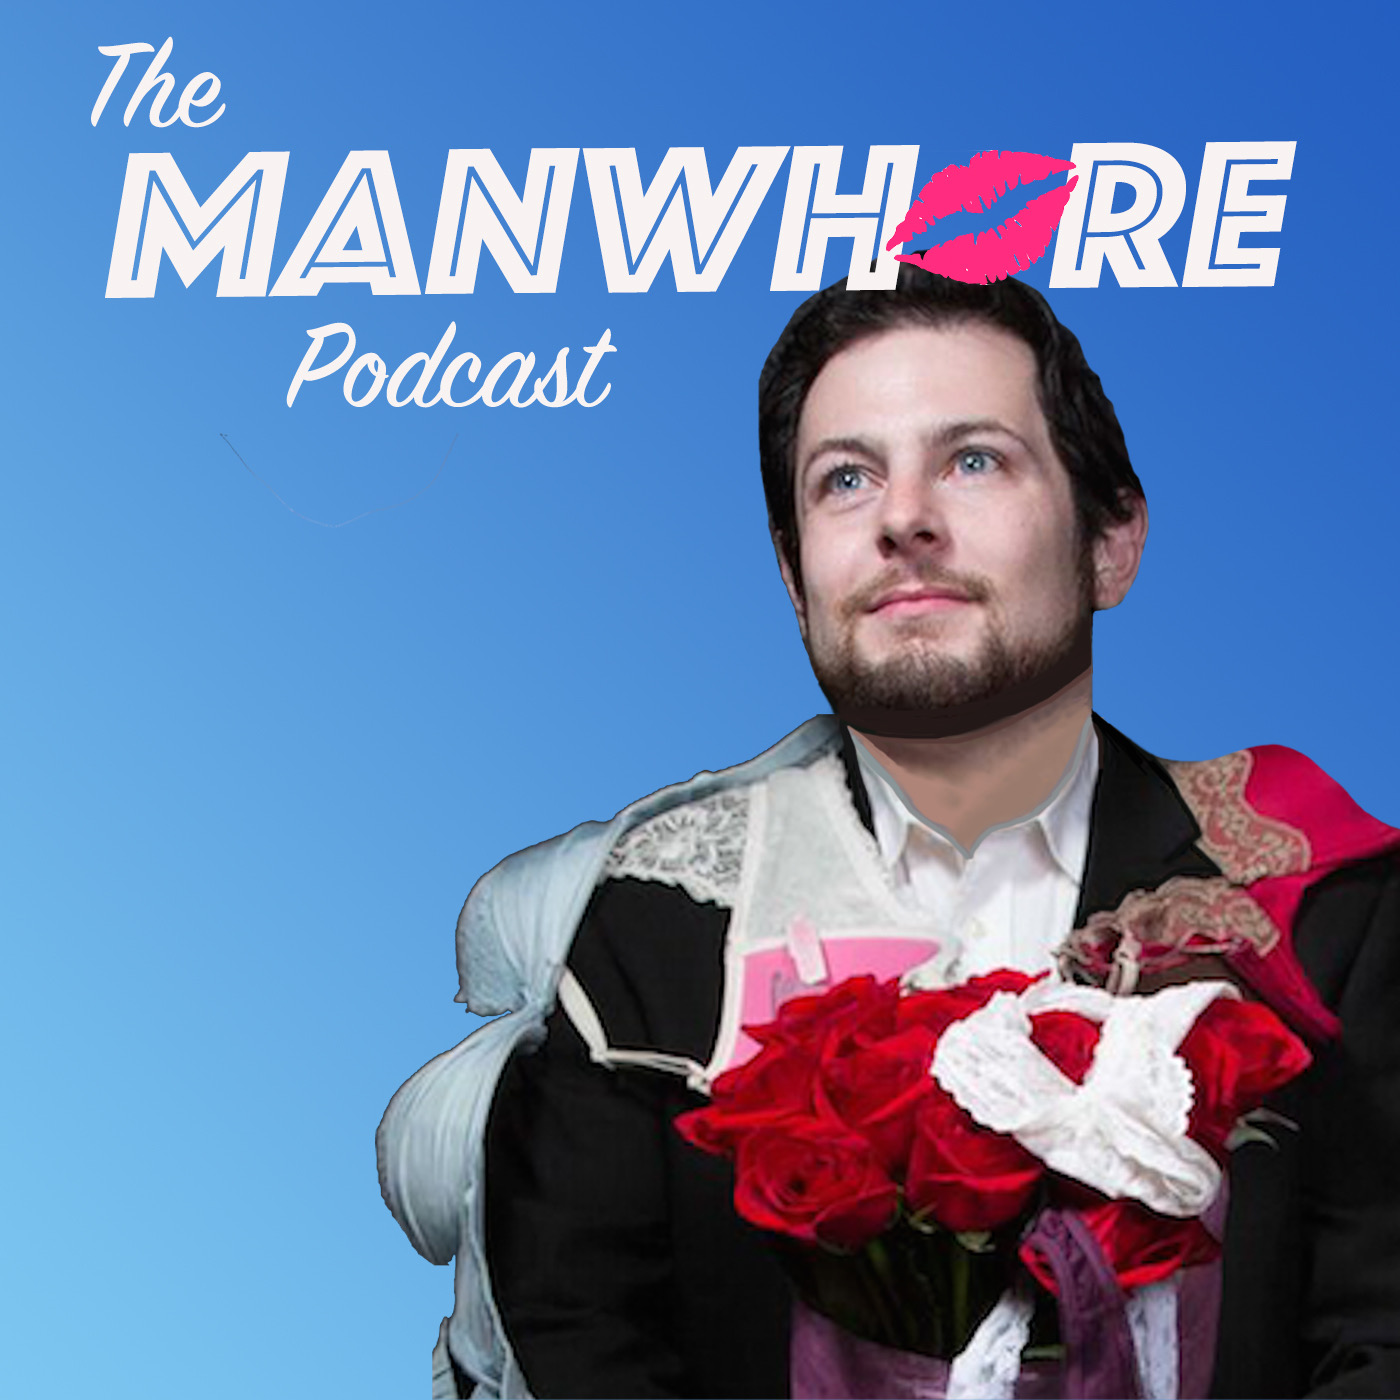 The Manwhore Podcast: A Sex-Positive Quest - Ep. 272: Sex Won't Make You Happy, Pickup Artists!